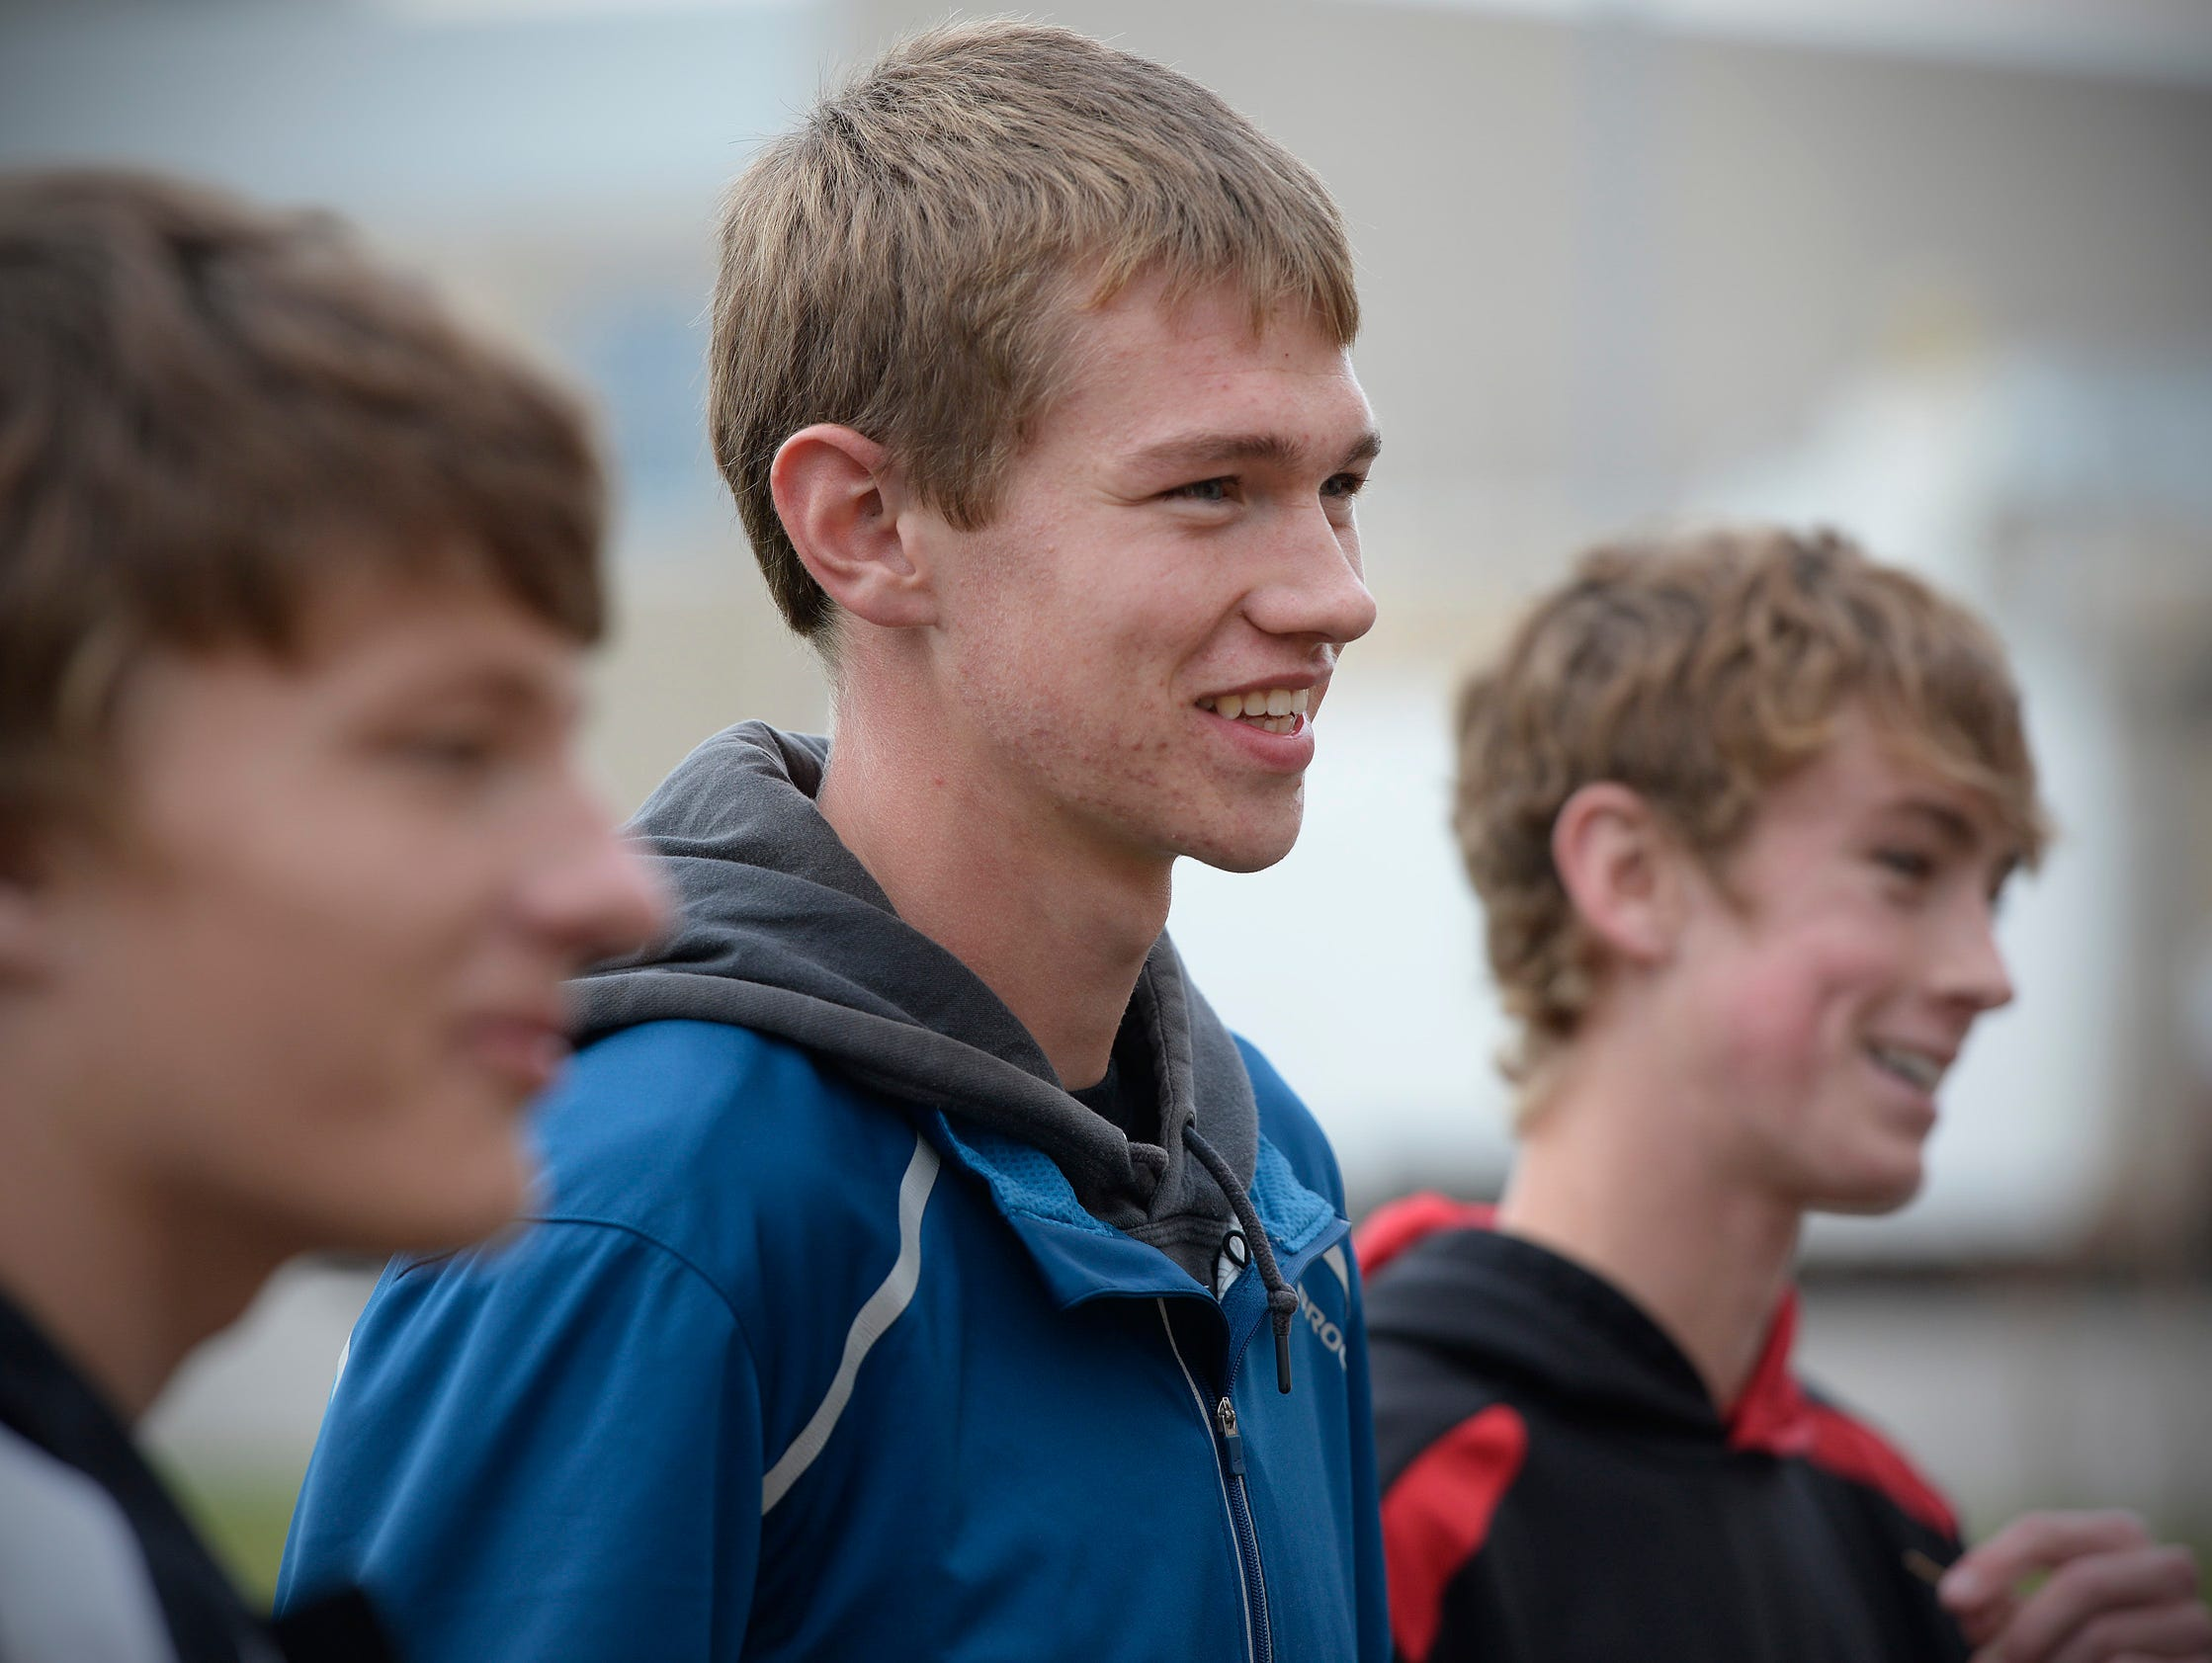 Rocori High School cross country standout Noah Lahr, center, smiles as he and his teammates gather after warmups in practice Tuesday, Oct. 27 at the school.